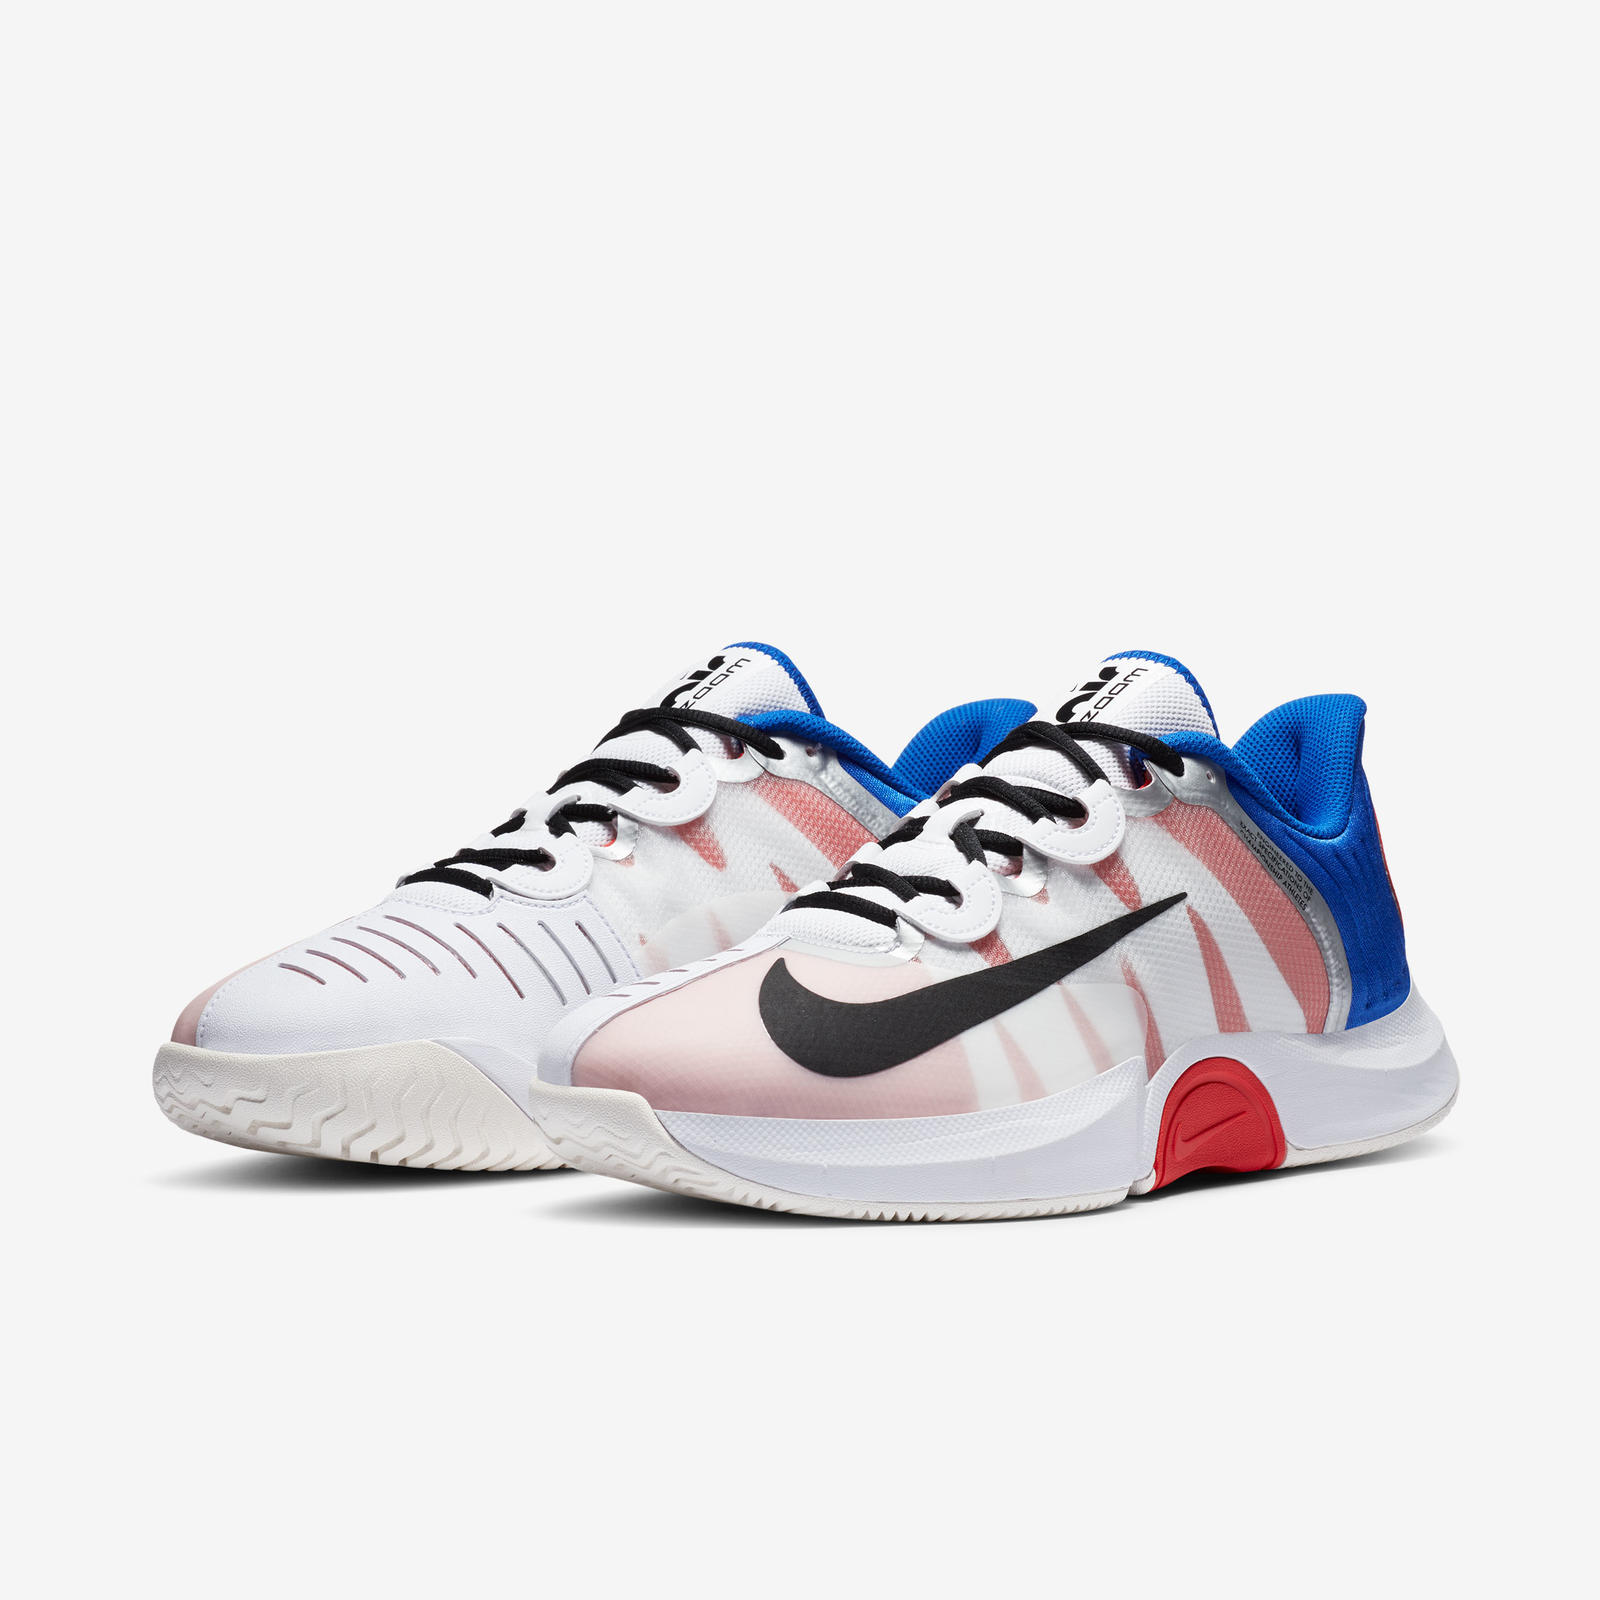 NikeCourt GP Turbo Official Images and Release Date 2